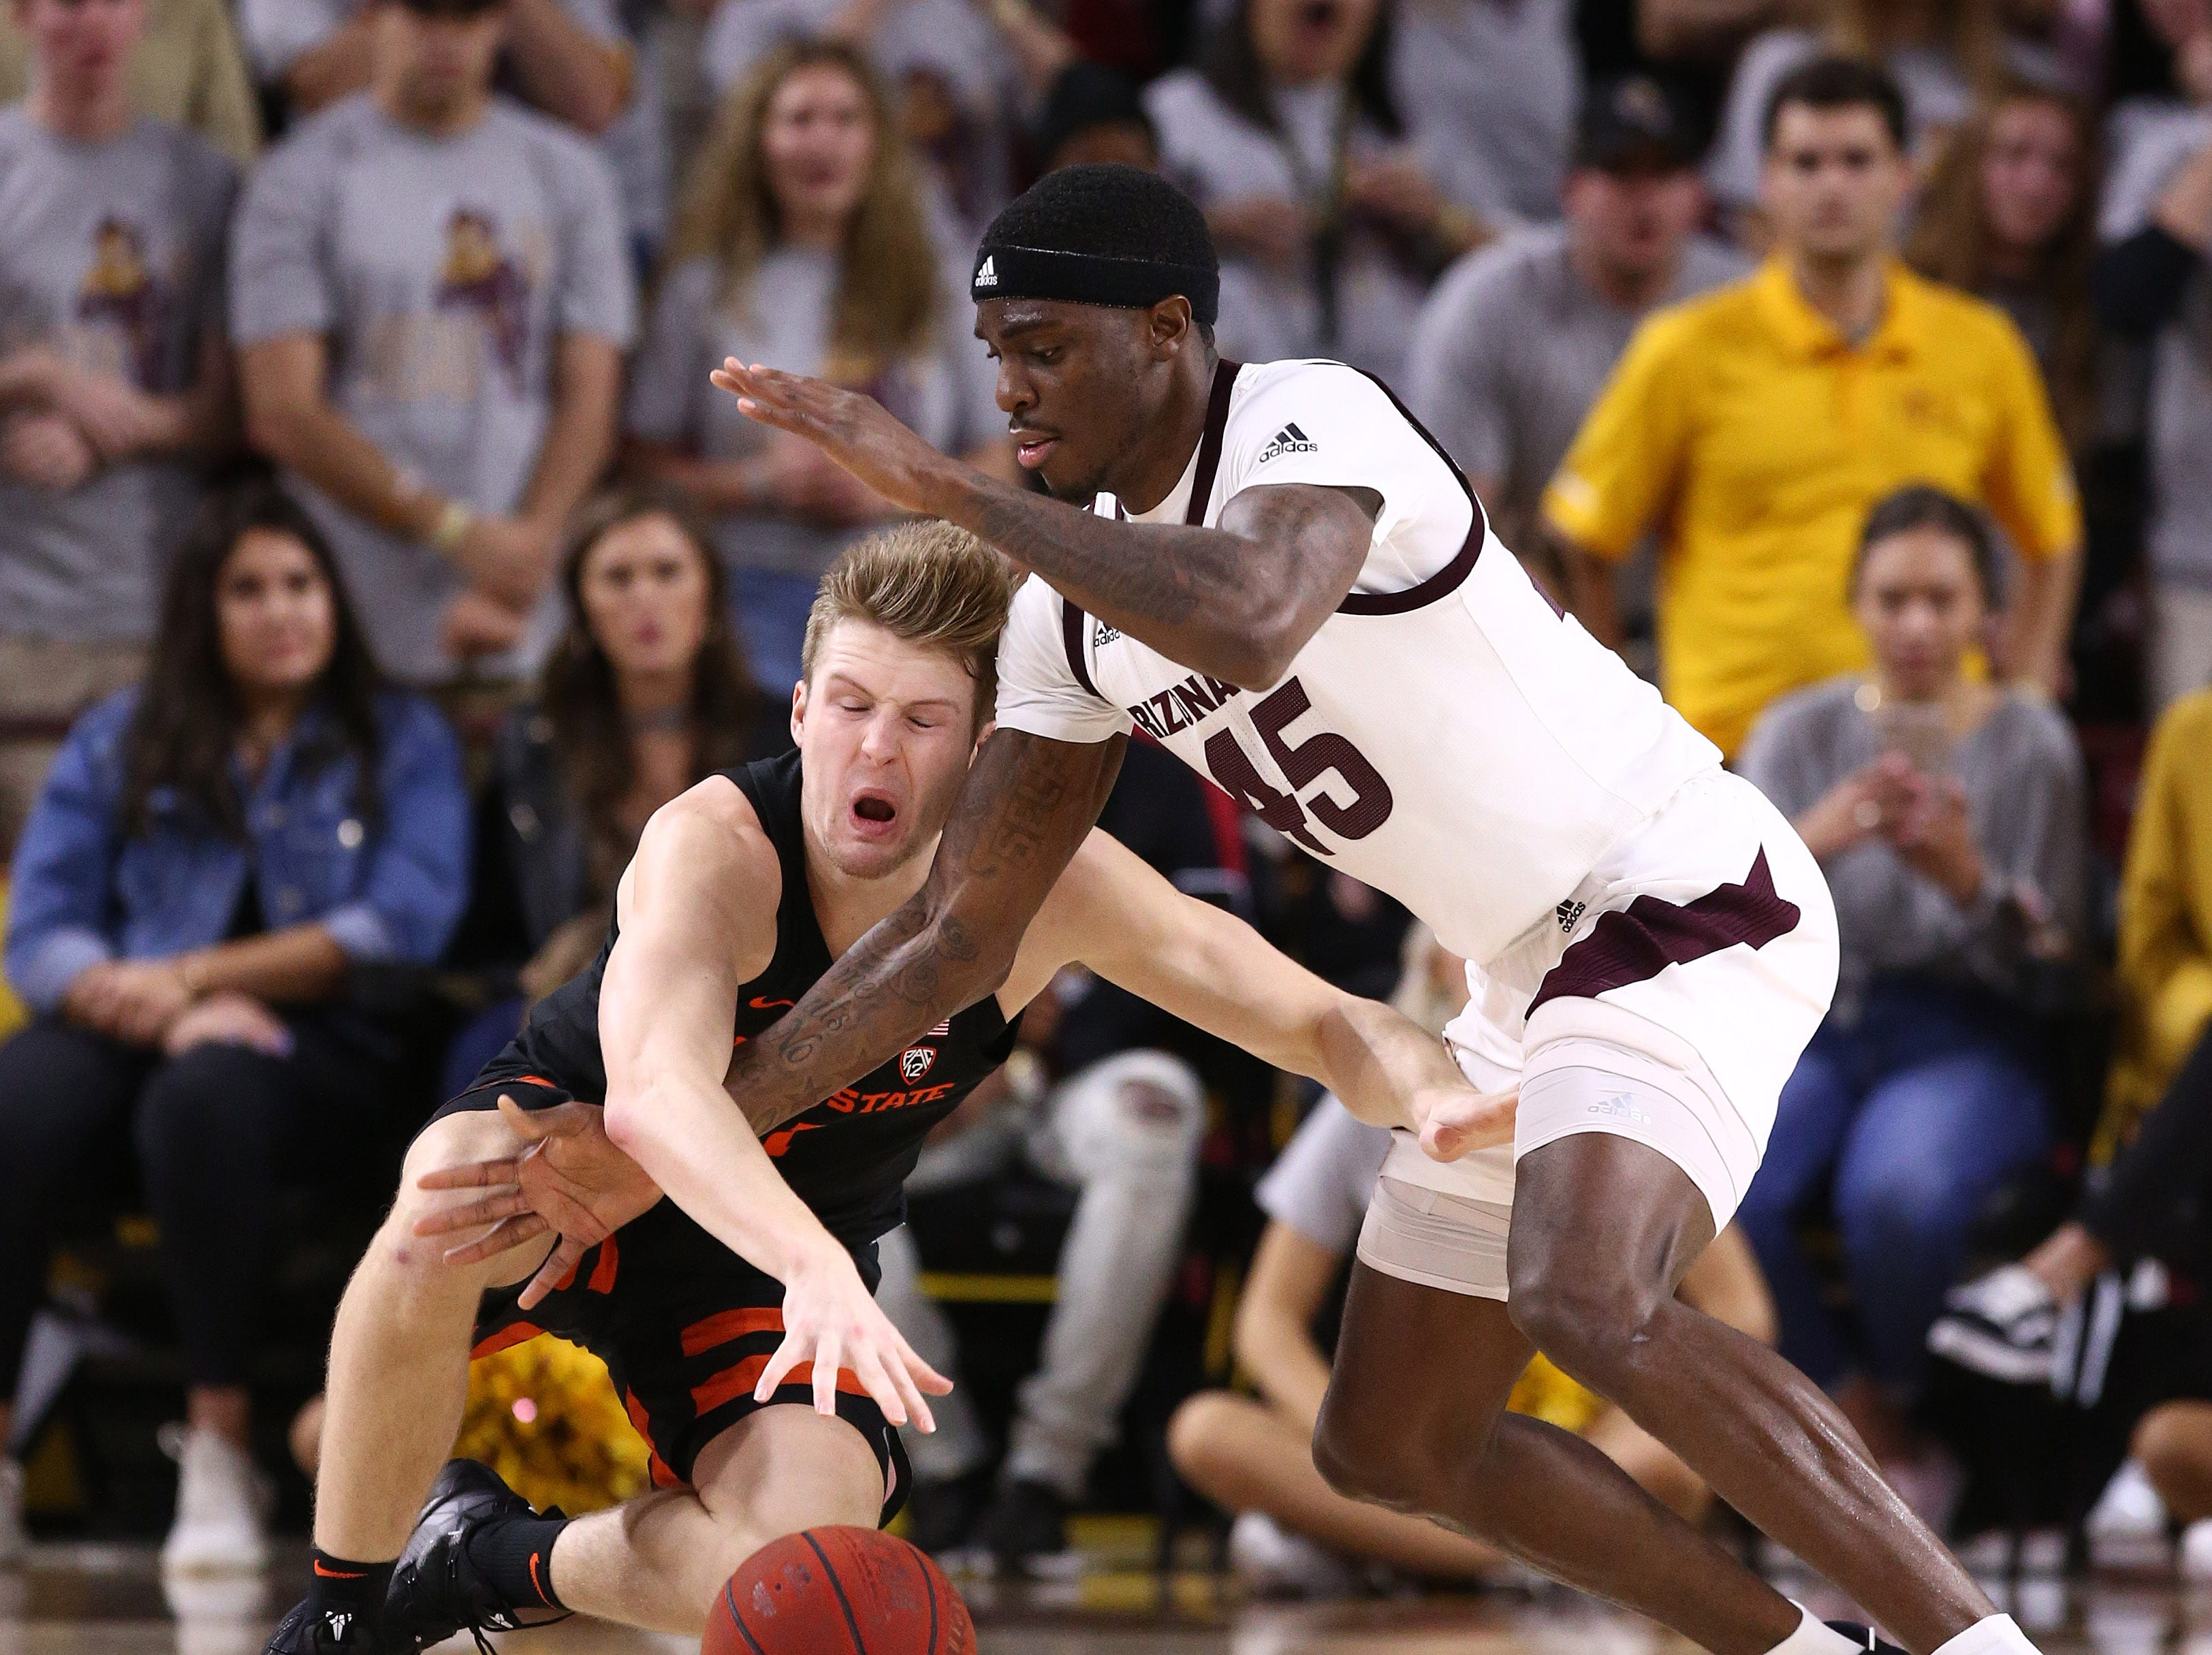 Arizona State Sun Devils forward Zylan Cheatham knocks the ball away from Oregon State Beavers' Zach Reichle in the second half on Jan. 17 at Wells Fargo Arena in Tempe.